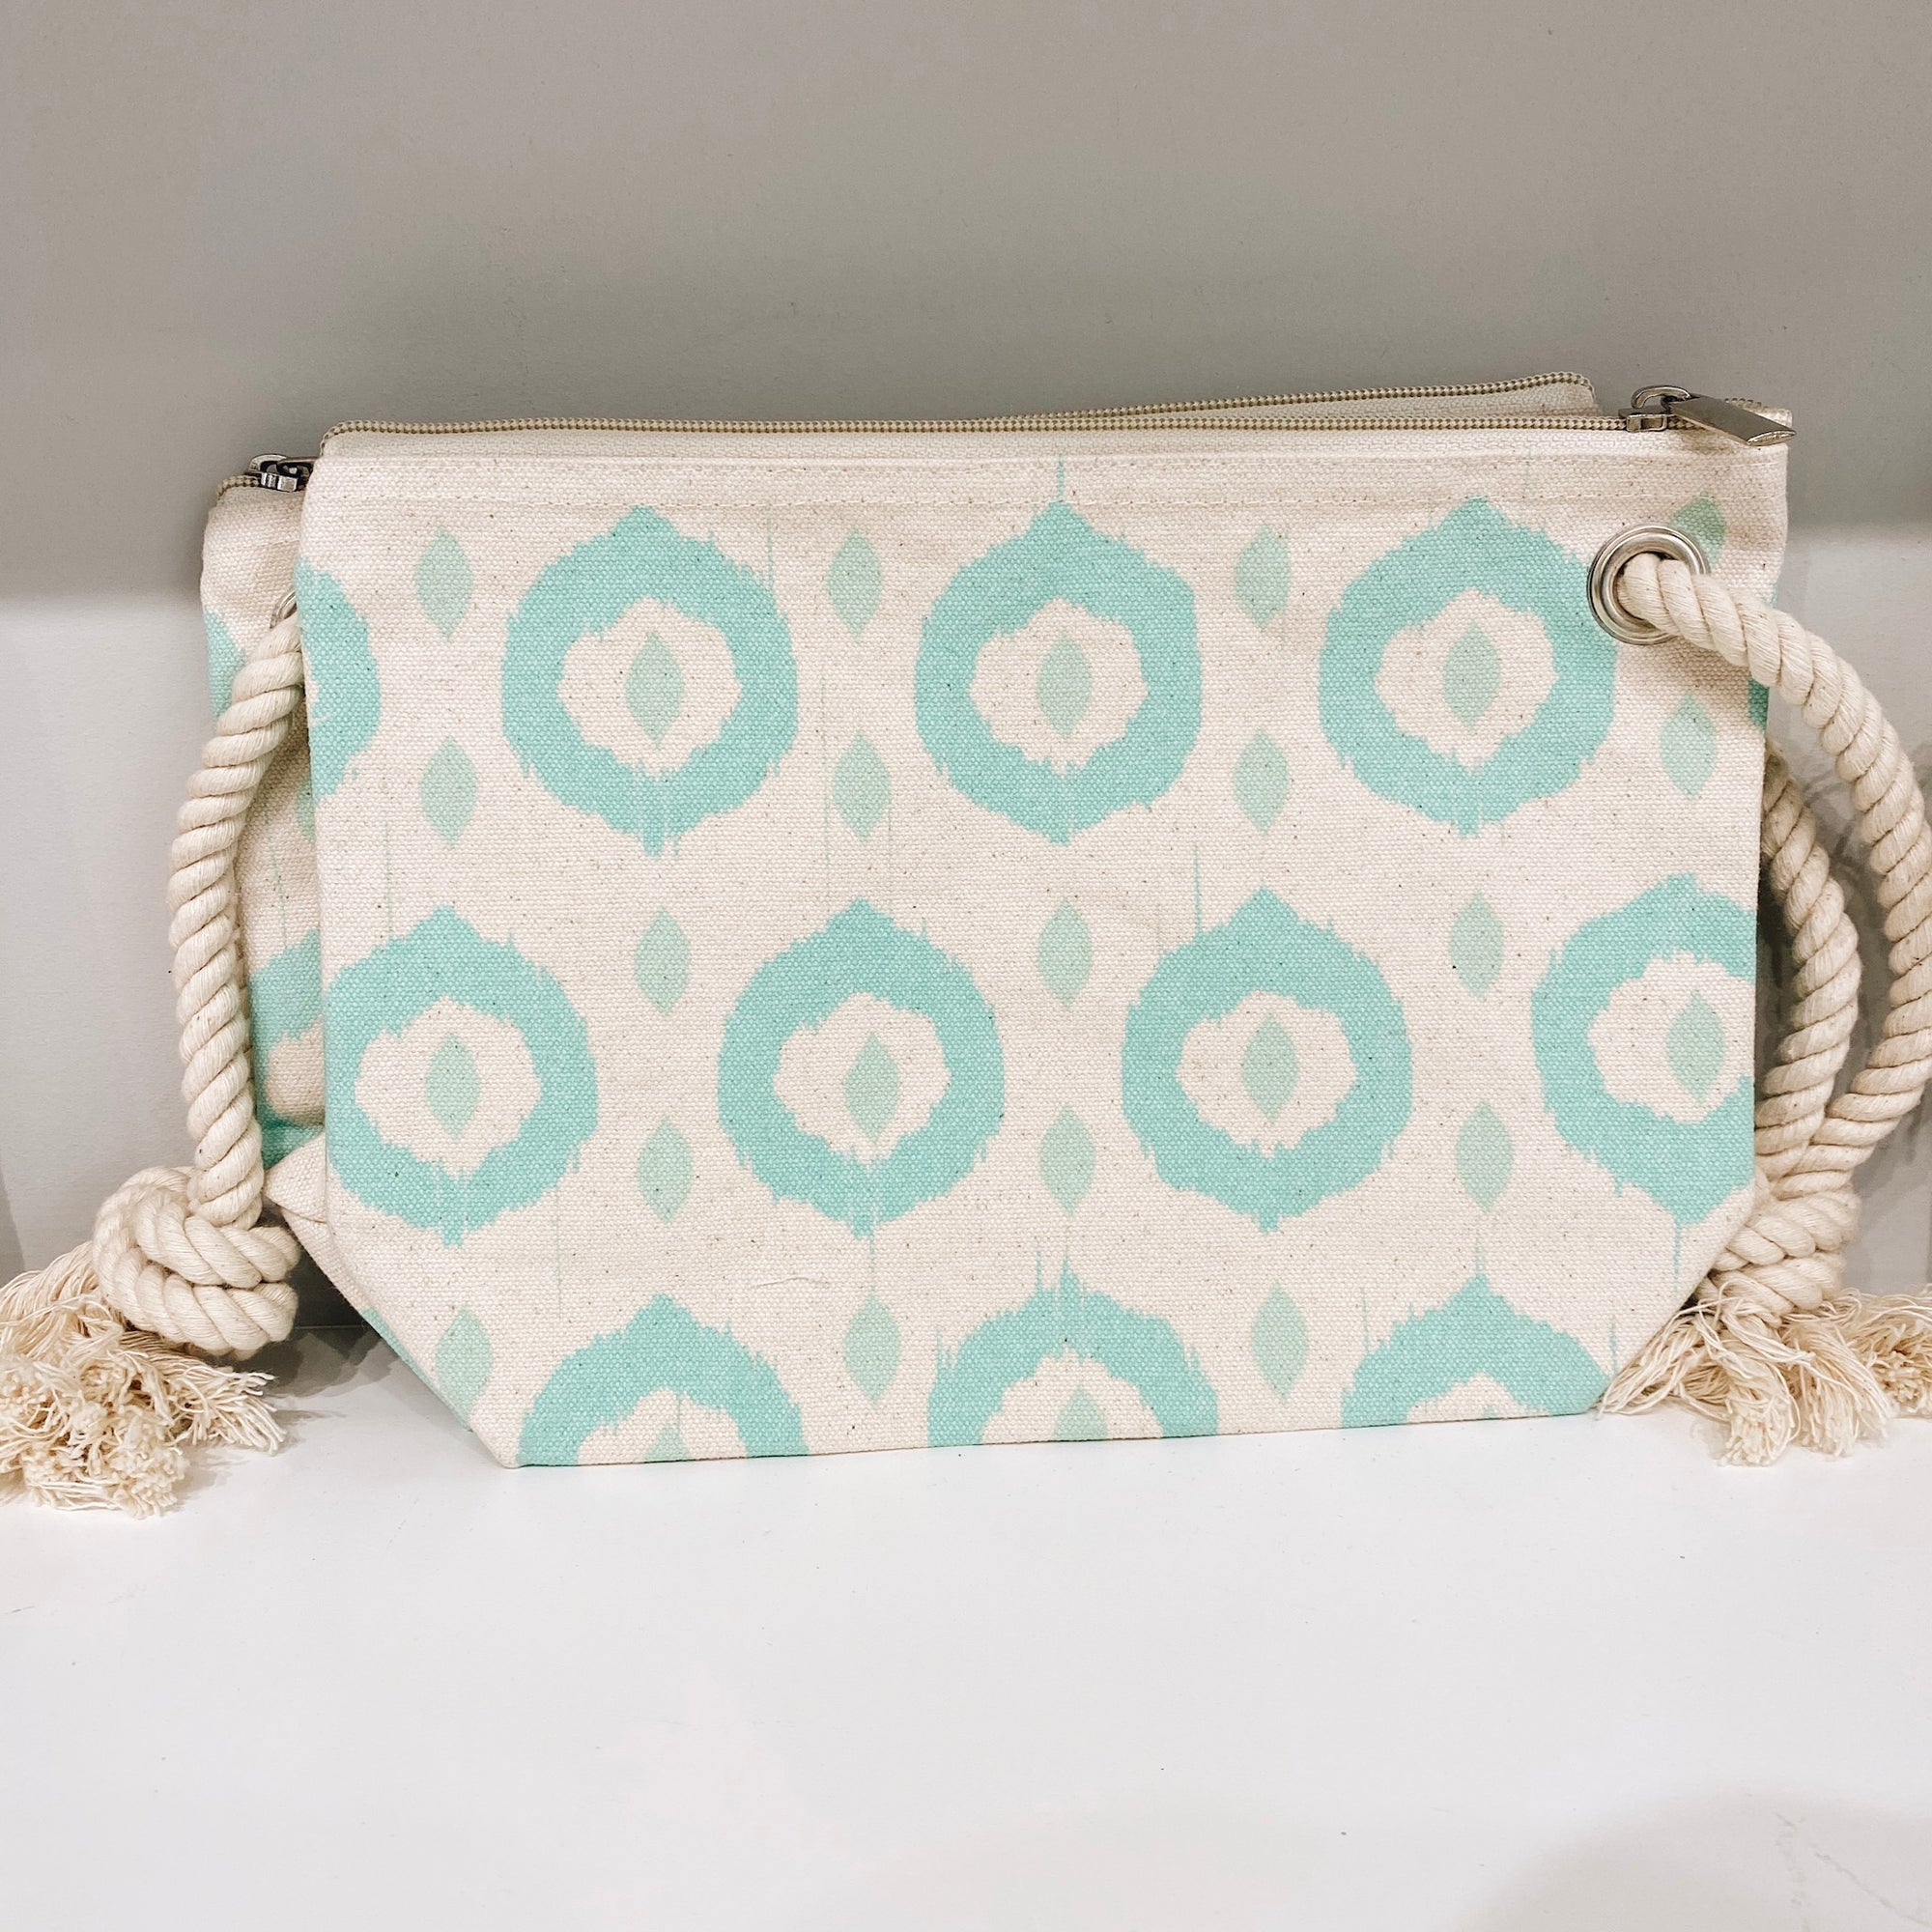 Mint Green Printed Clutch